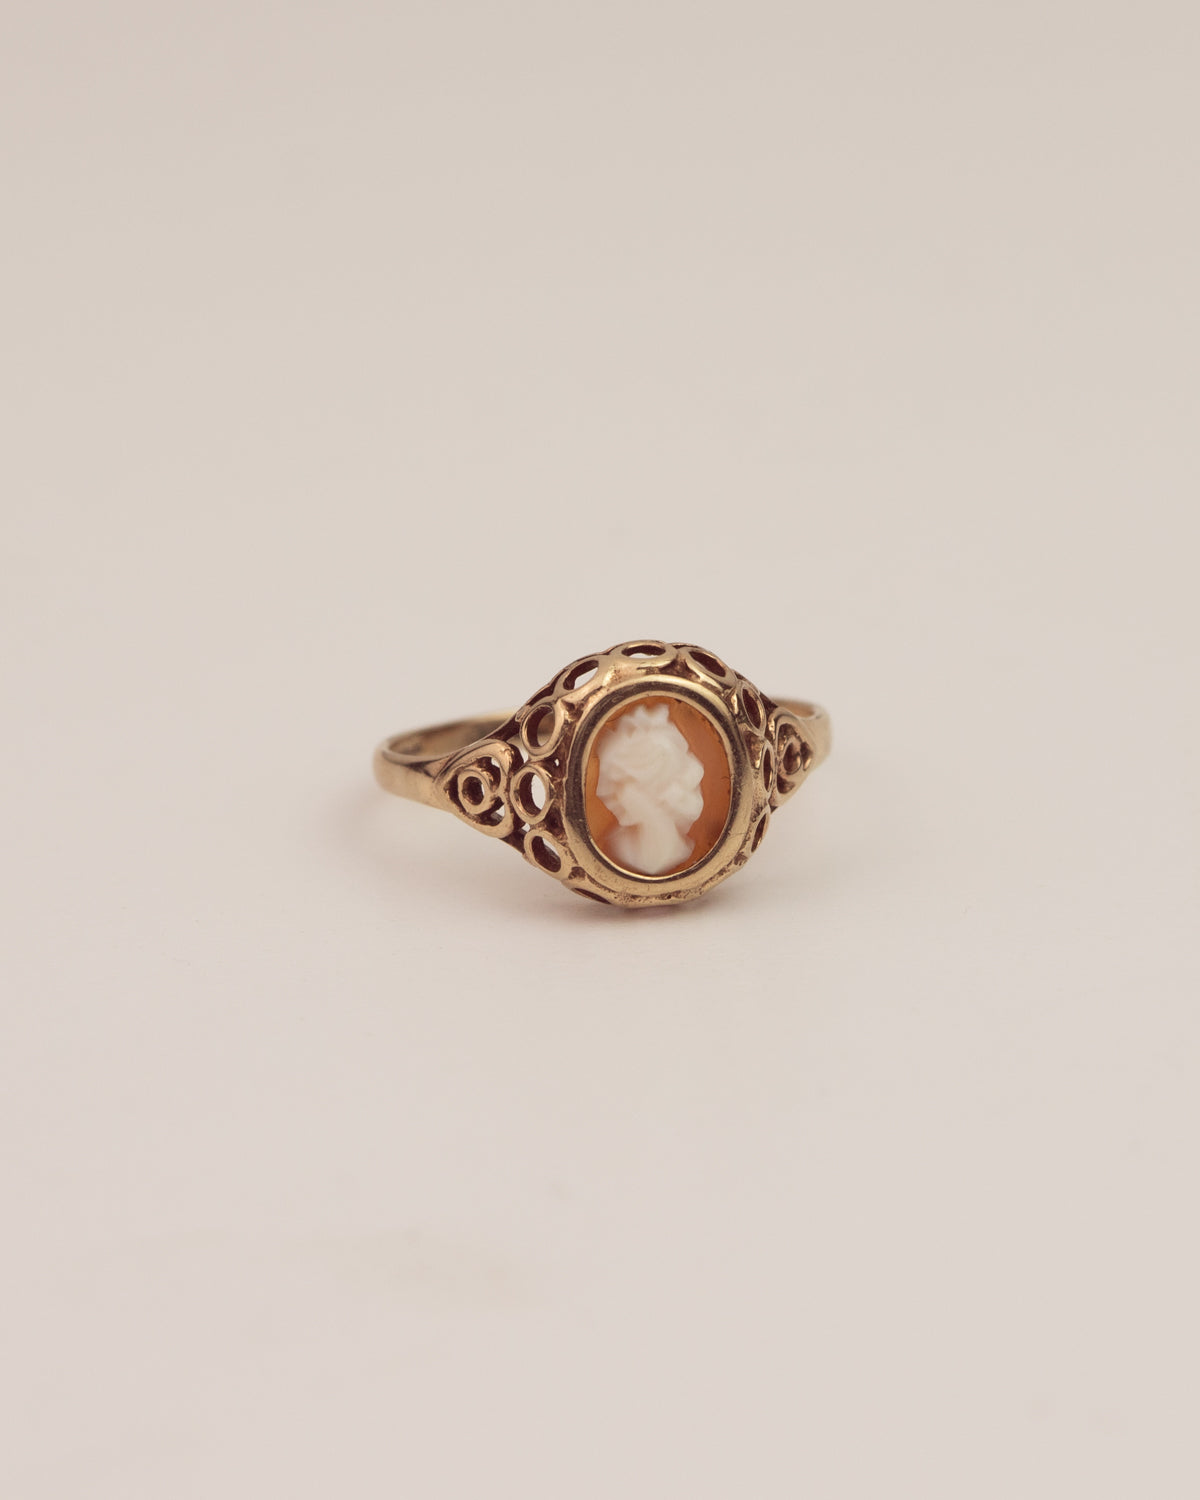 Mabel Exclusive Vintage 9ct Gold Cameo Ring